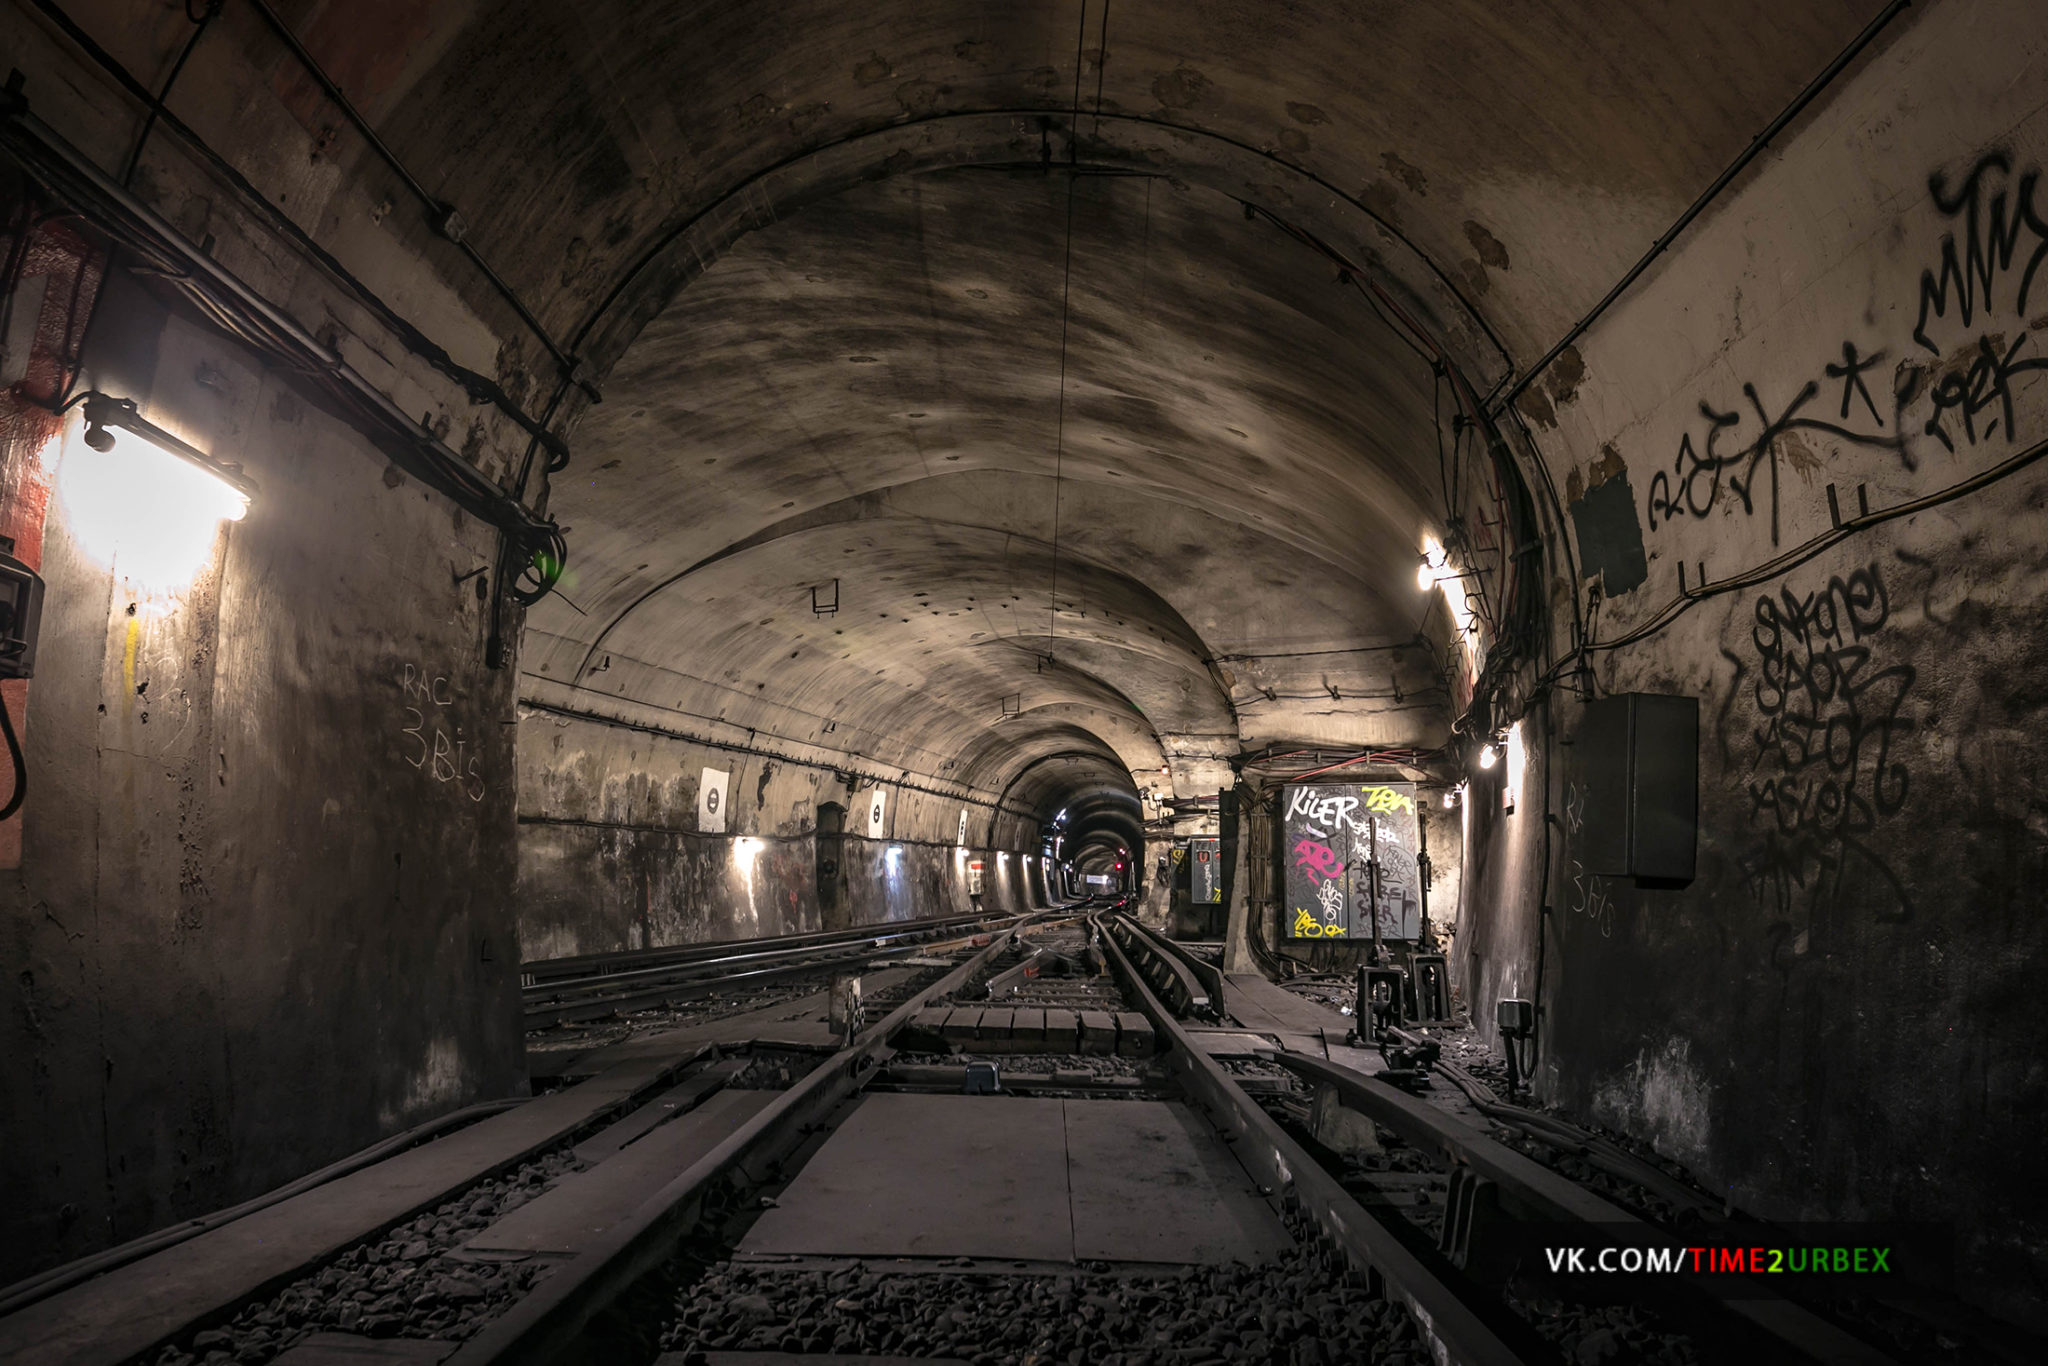 2-1 7 GHOST STATIONS OF THE PARIS METRO AND HOW TO GET INTO THE ILLEGALLY + UNUSUAL TUNNELS + RER